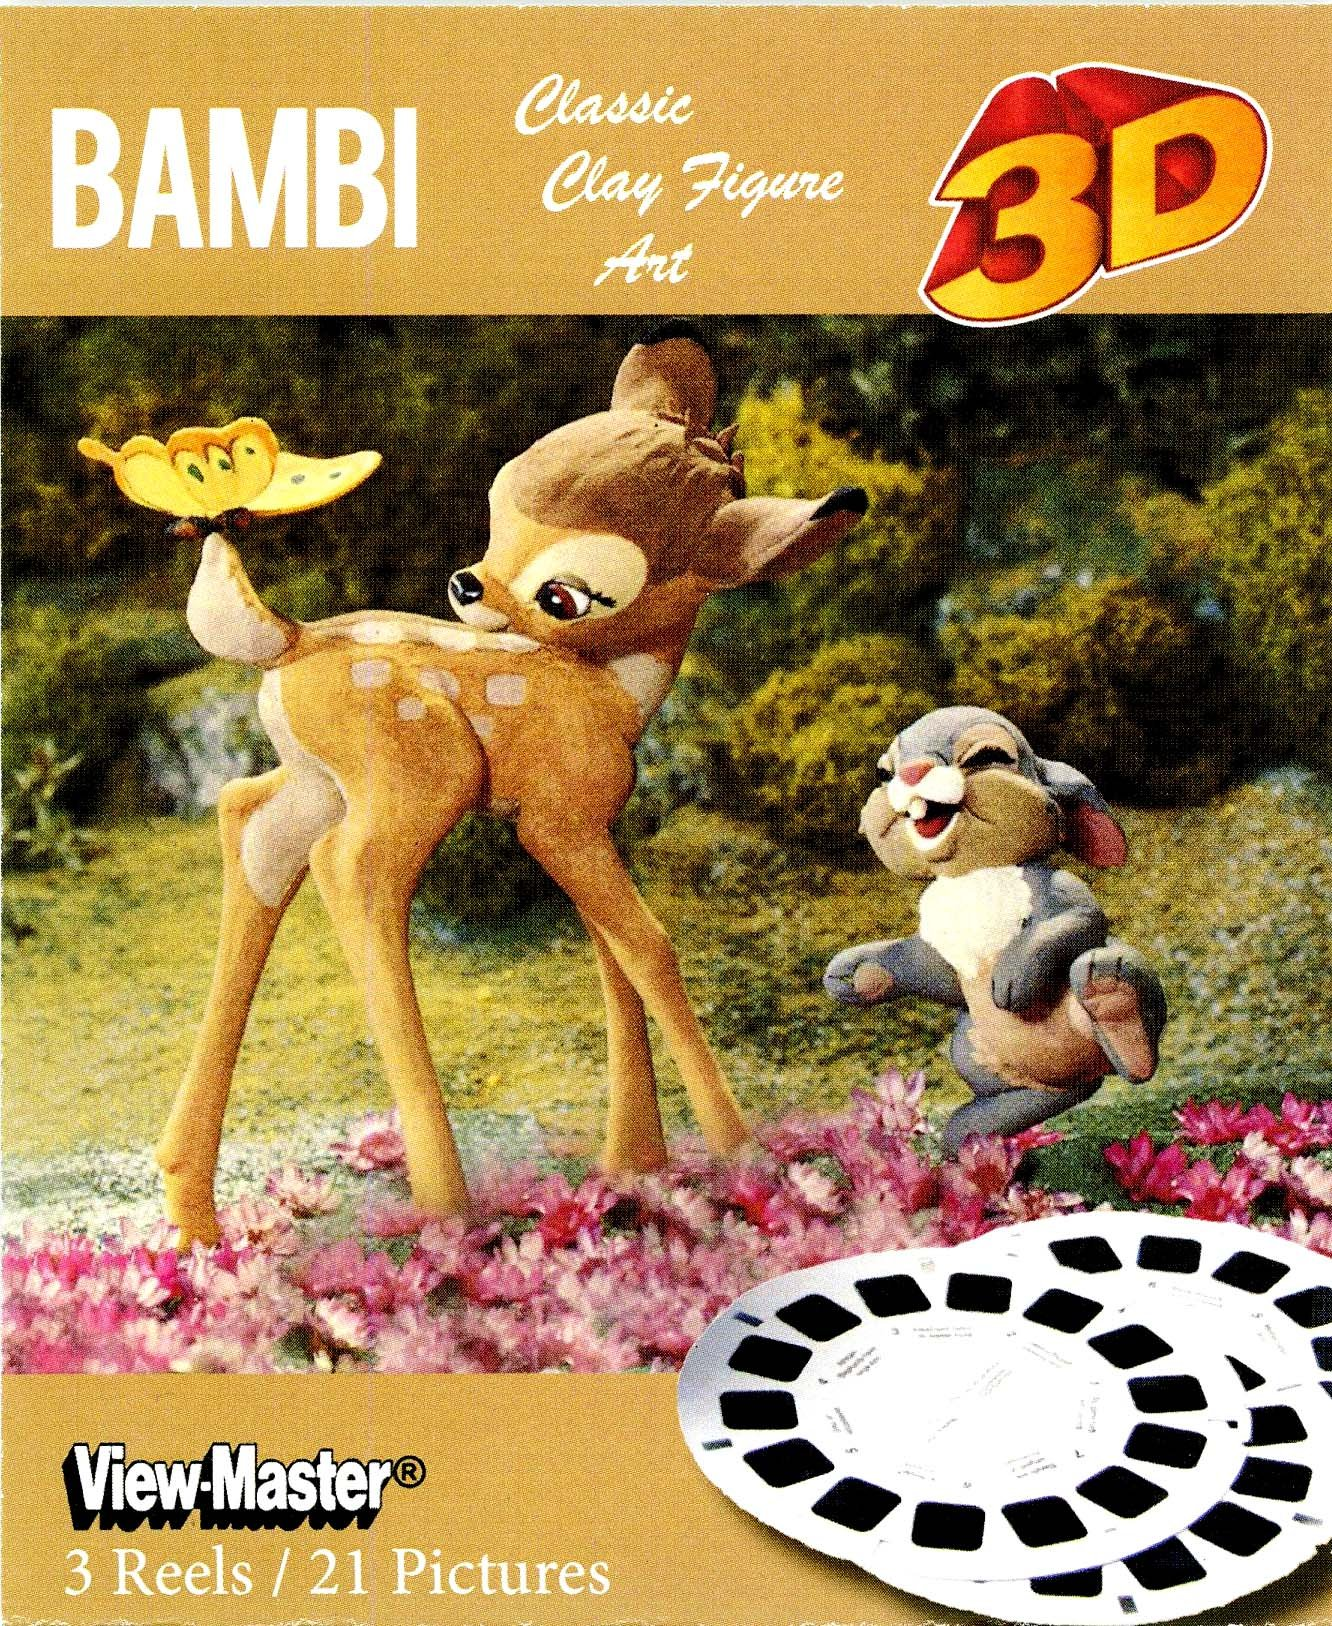 BAMBI - Classic ViewMaster - Clay Figure Art - 3 Reel Set by View Master